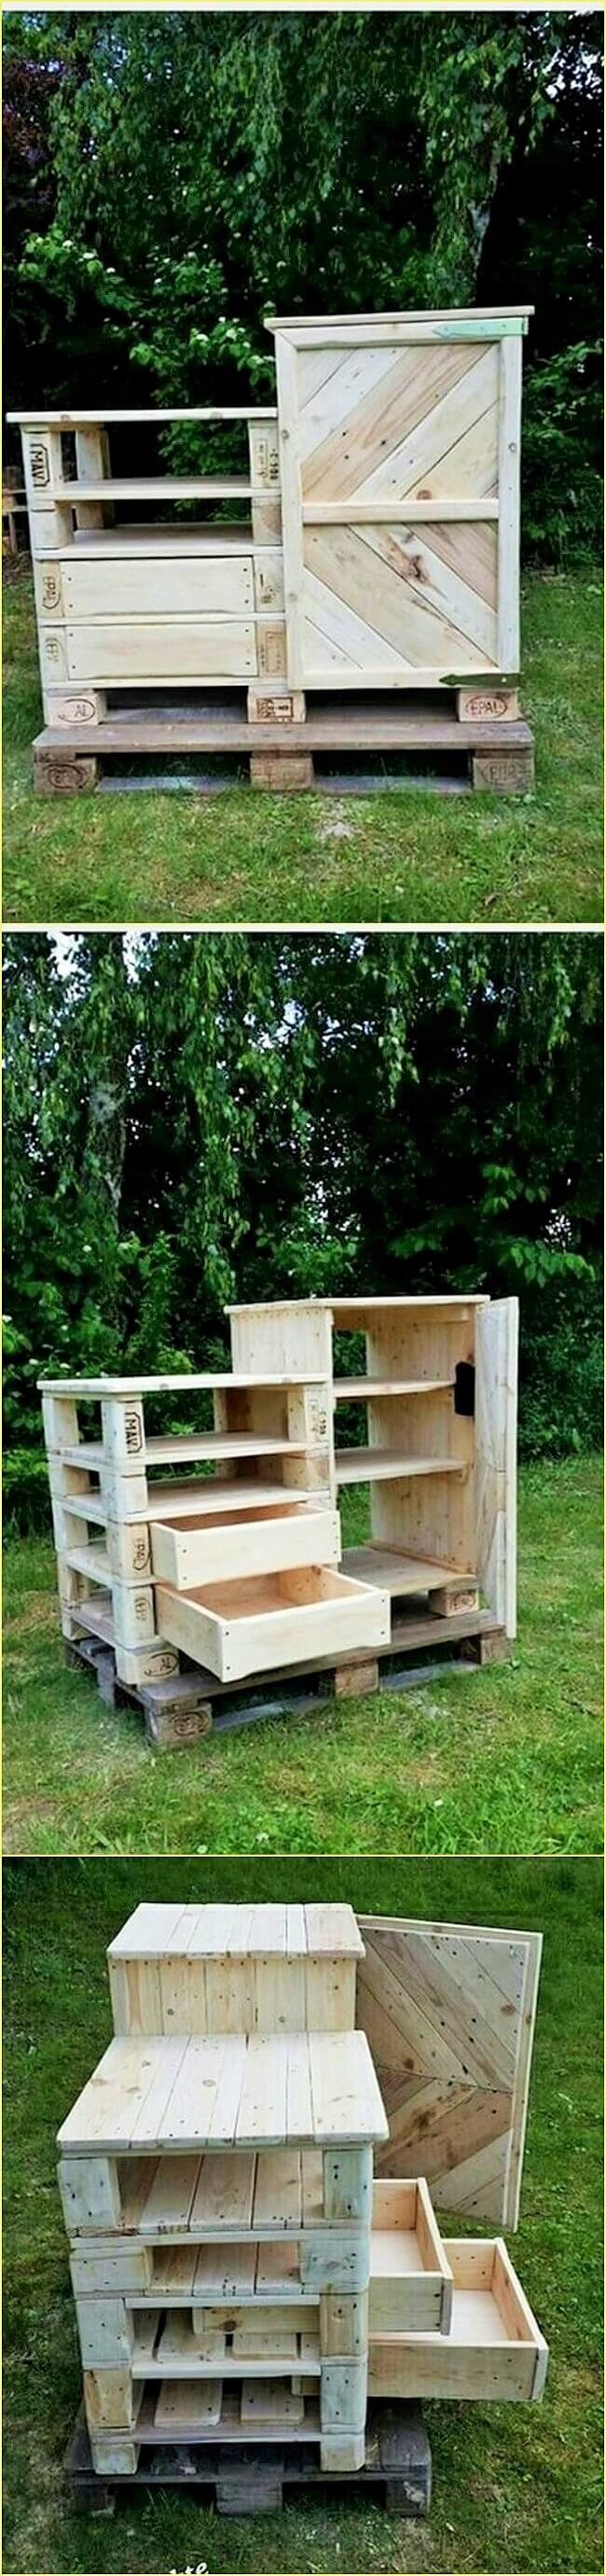 Wooden-Pallet-Cabinet-with-Drawers